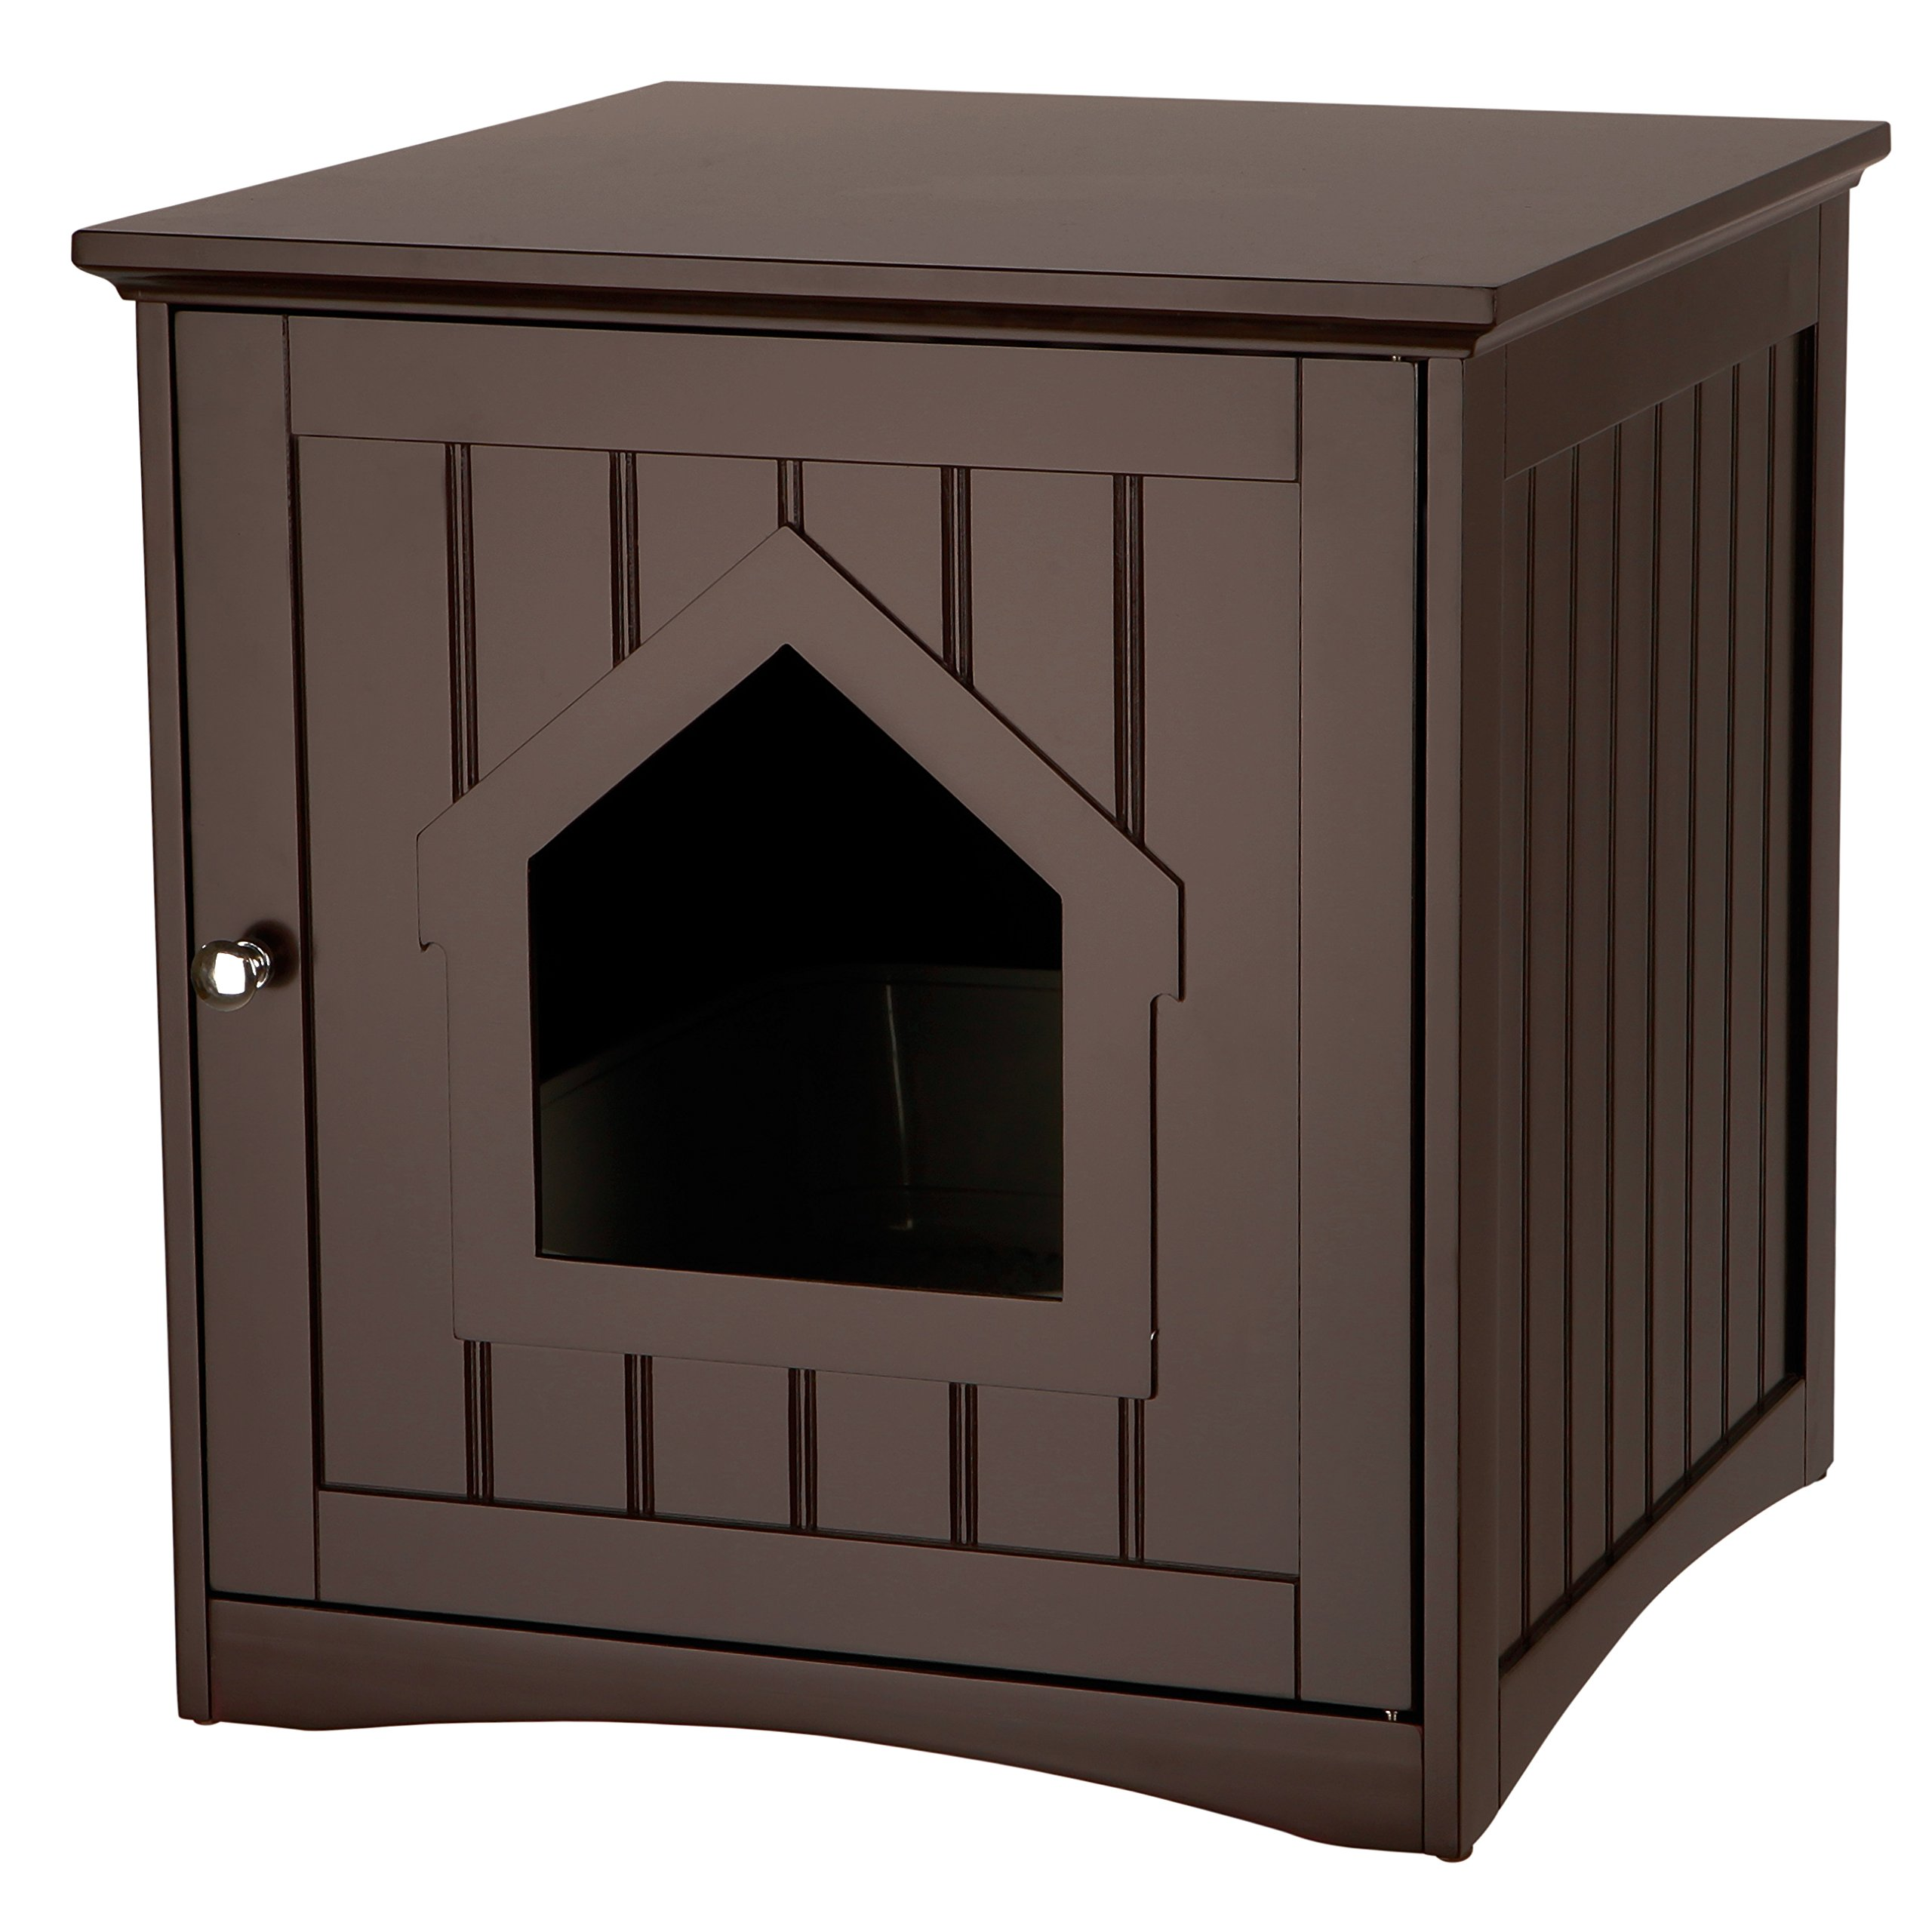 Trixie Products Wooden Litter Brown